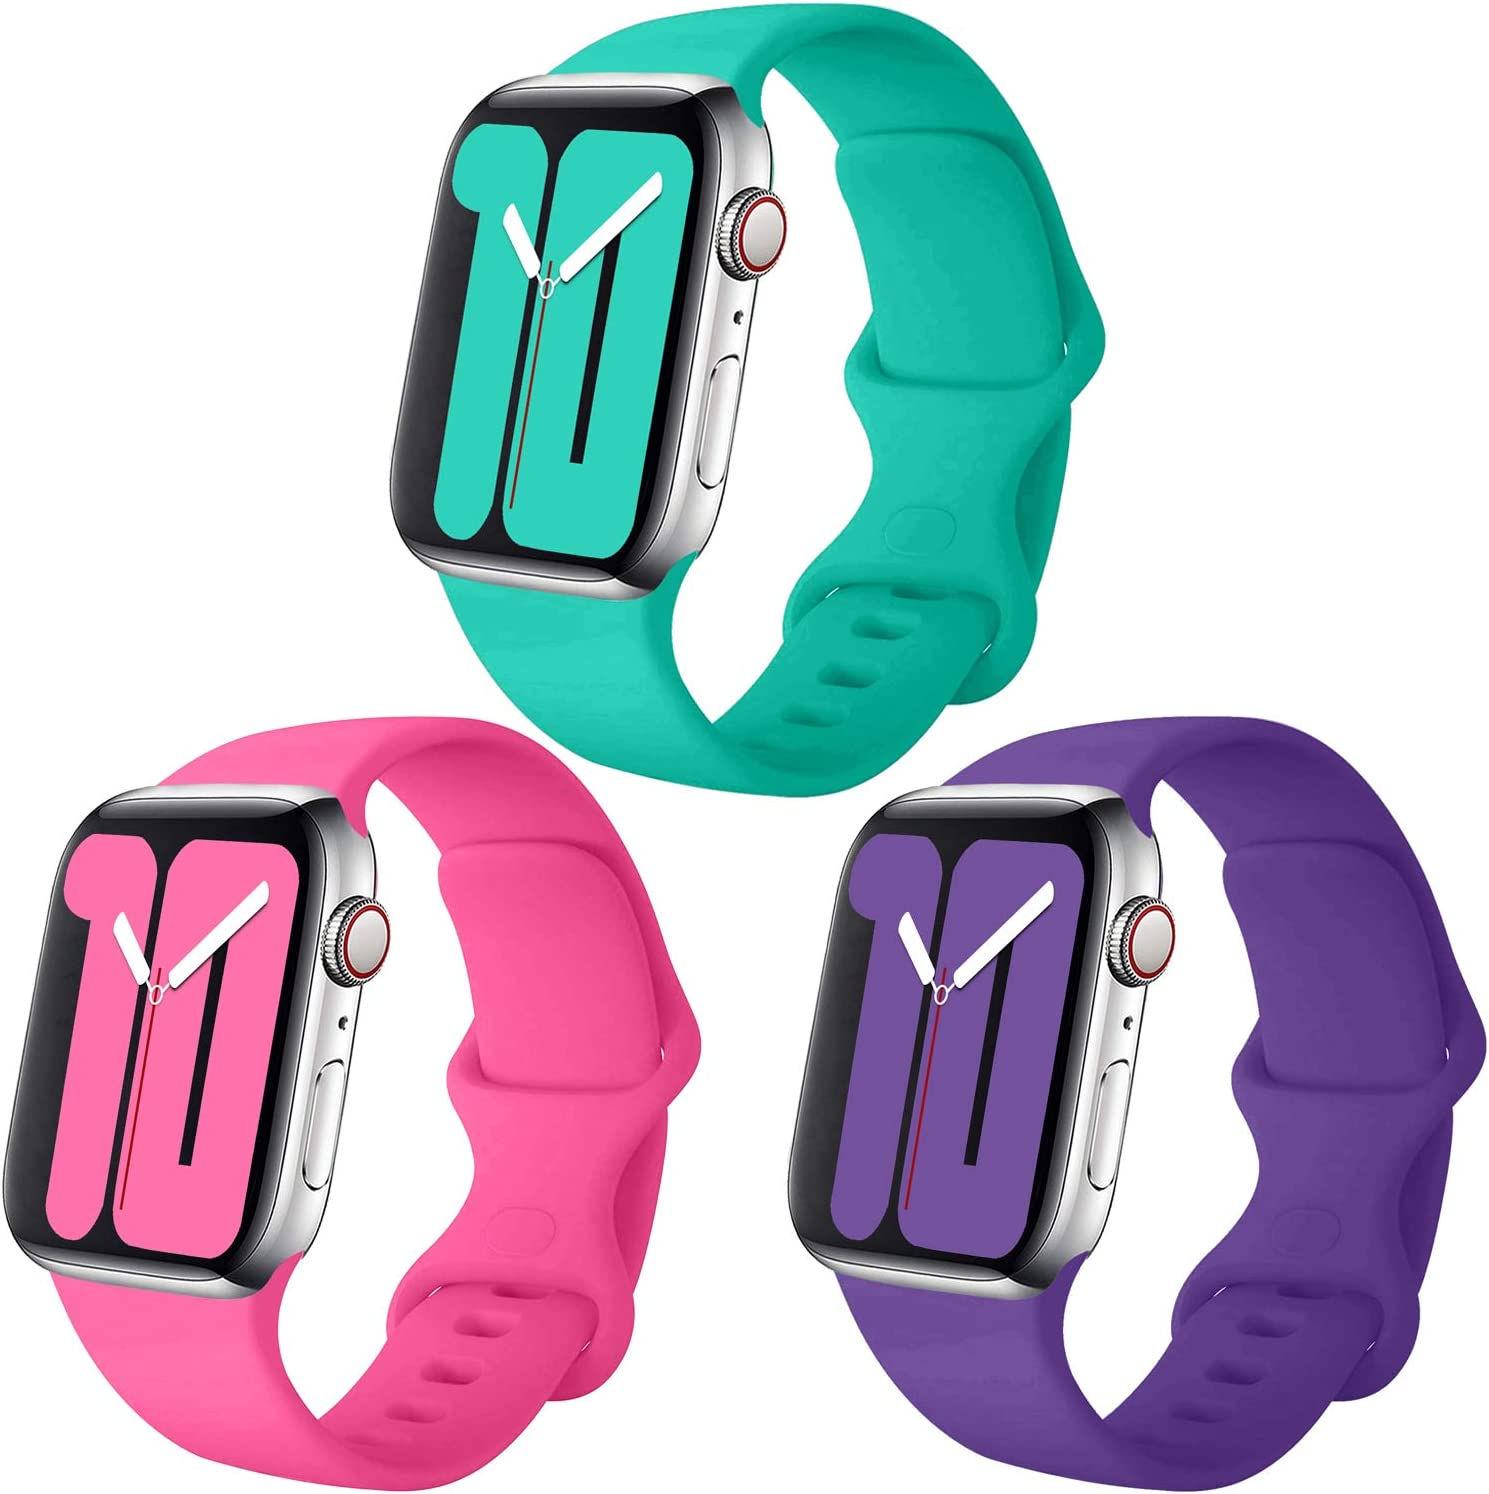 Misker Pack 3 Compatible with Apple Watch Band 38mm 40mm 42mm 44mm,for iWatch Series 5, 4, 3, 2, 1 (Barbie Pink/Deep Purple/Teal, 42mm(44mm)-S/M)